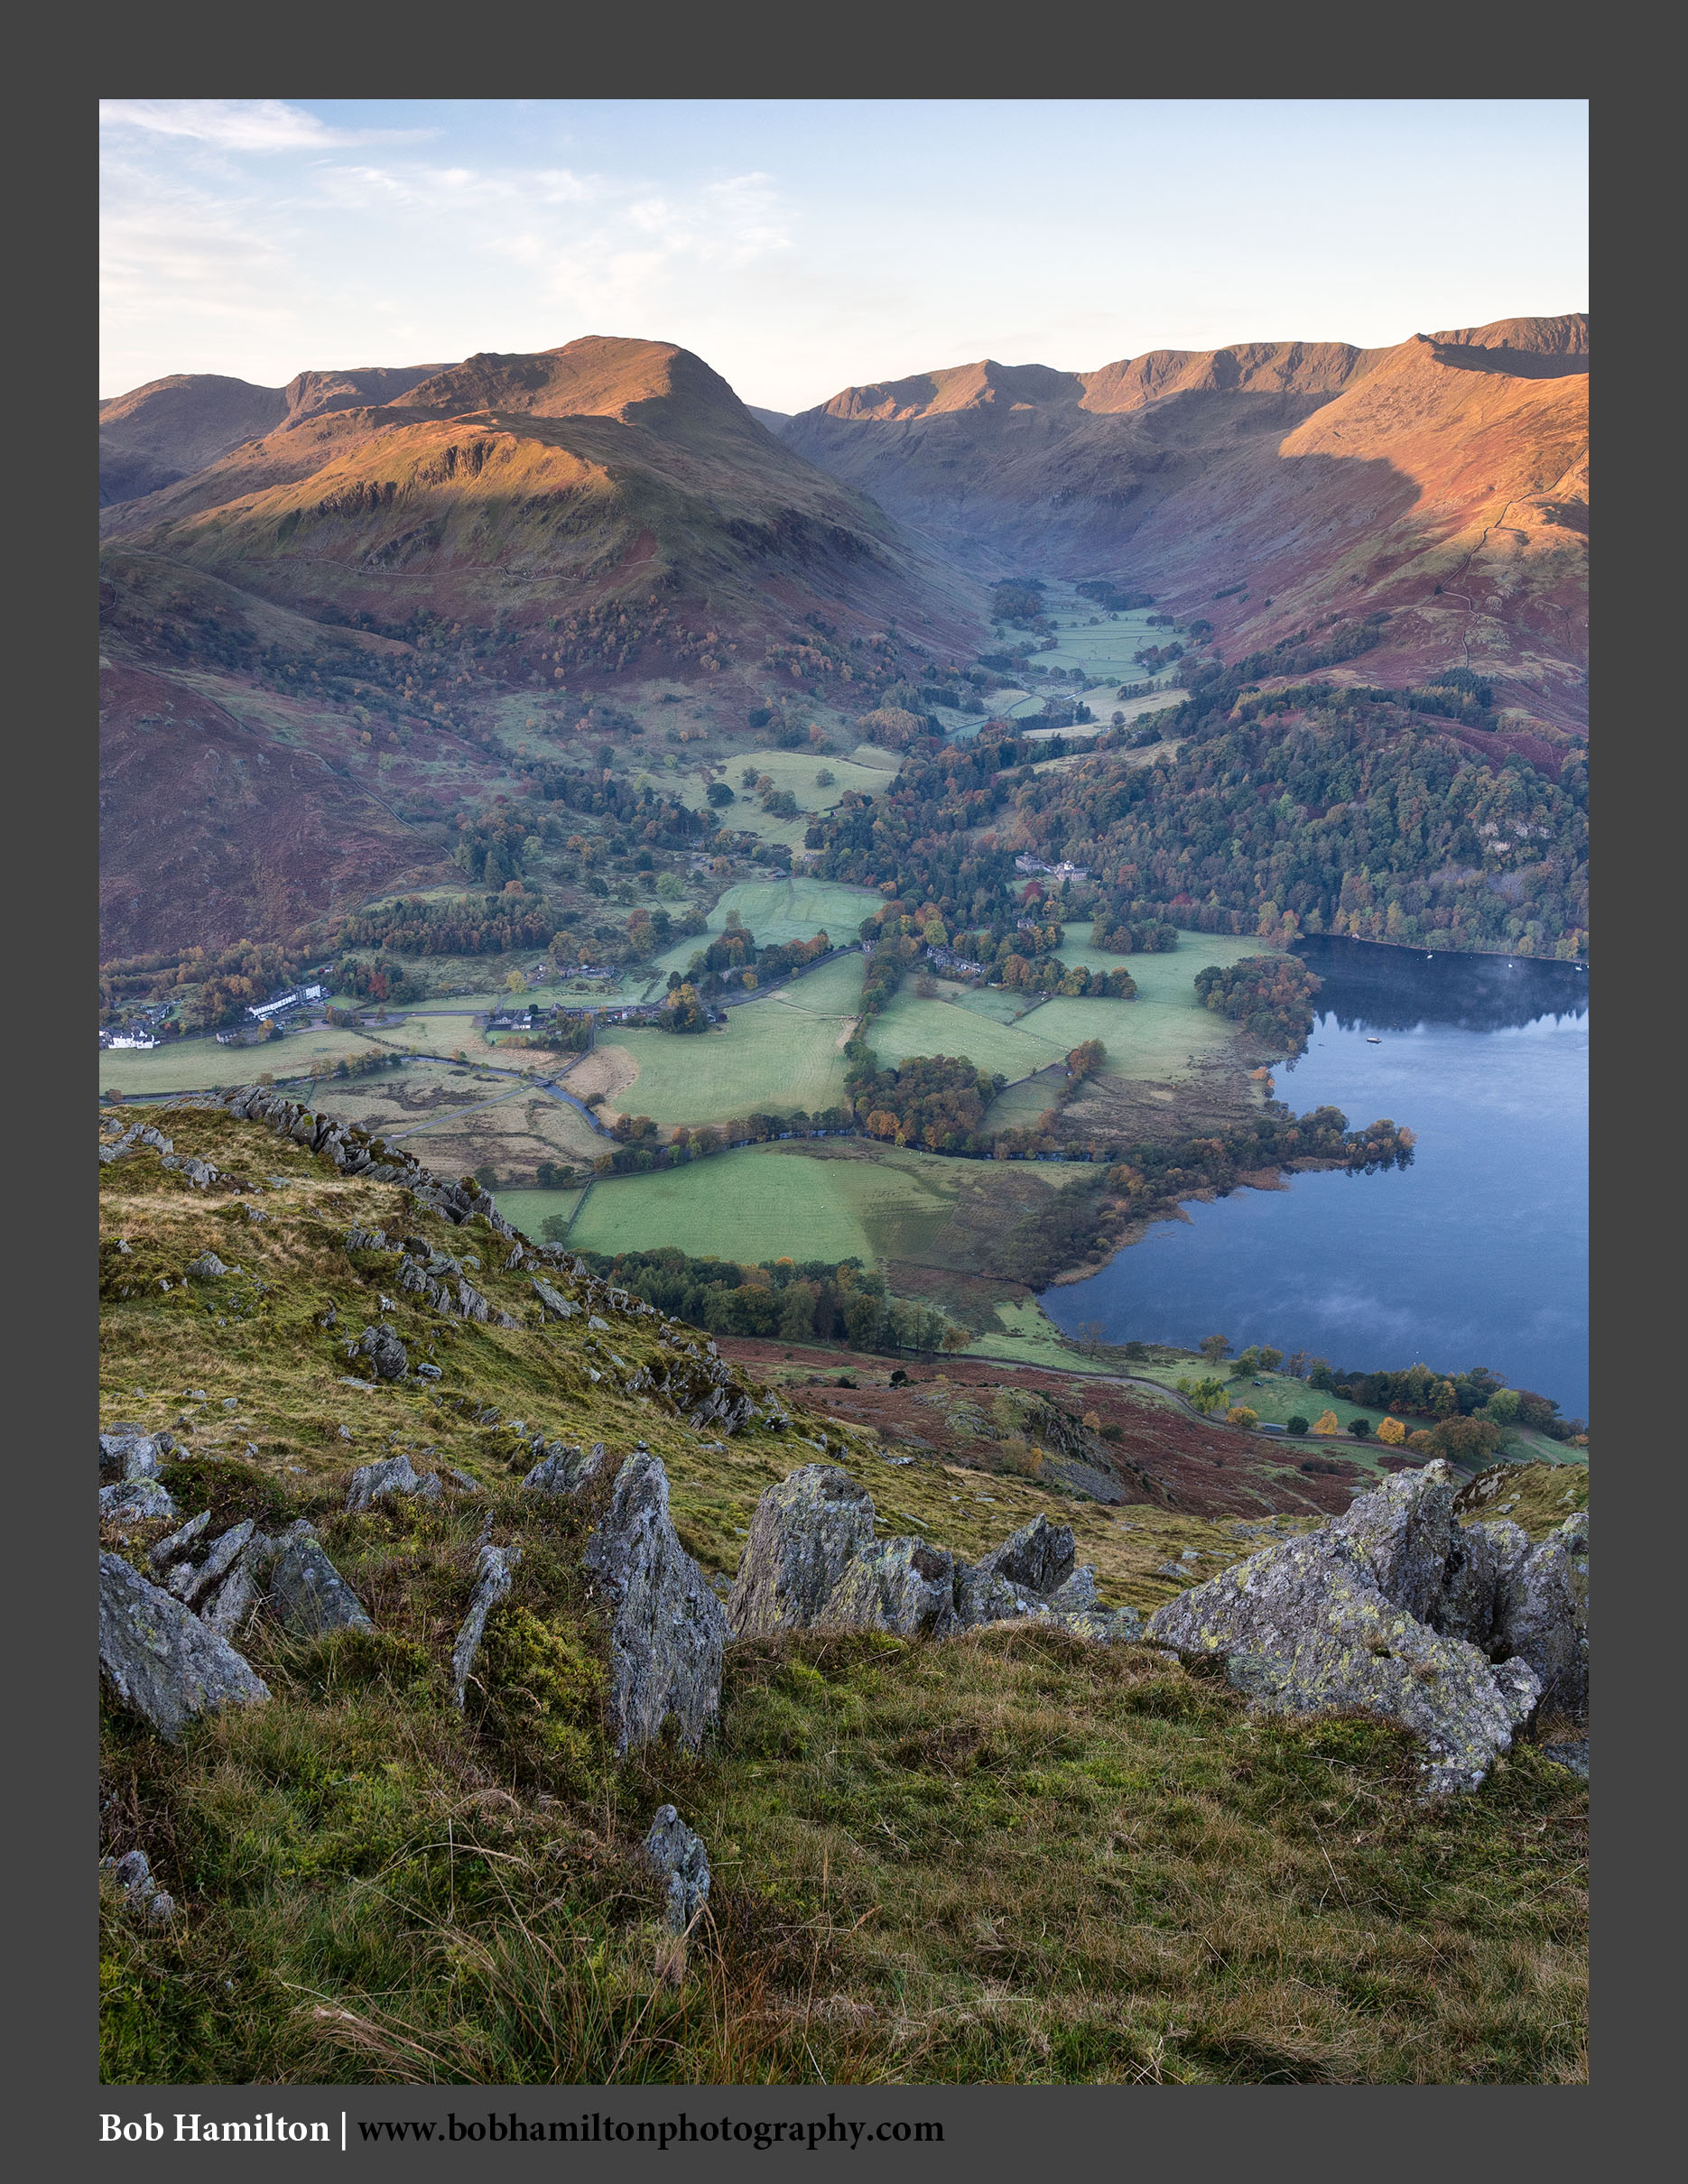 O126453 Daybreak on Glenridding St Sunday Crag Grisedale and the Helvellyn range from Place Fell